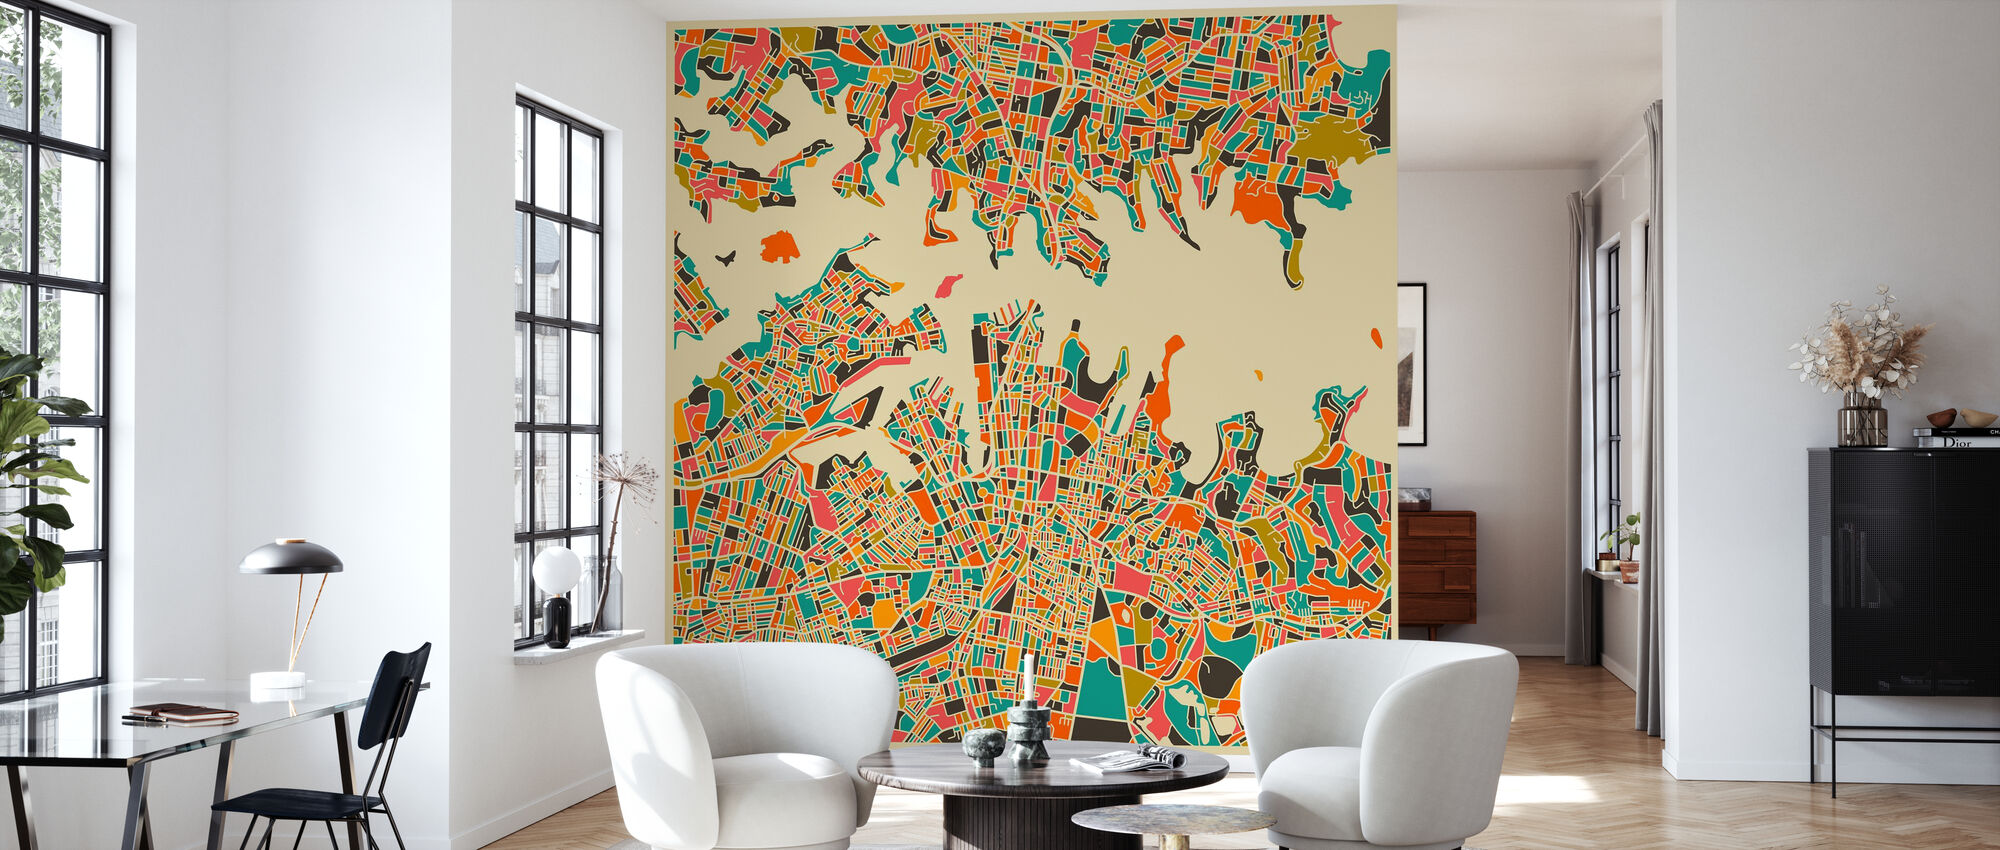 Multicolor Map - Sydney - Wallpaper - Living Room